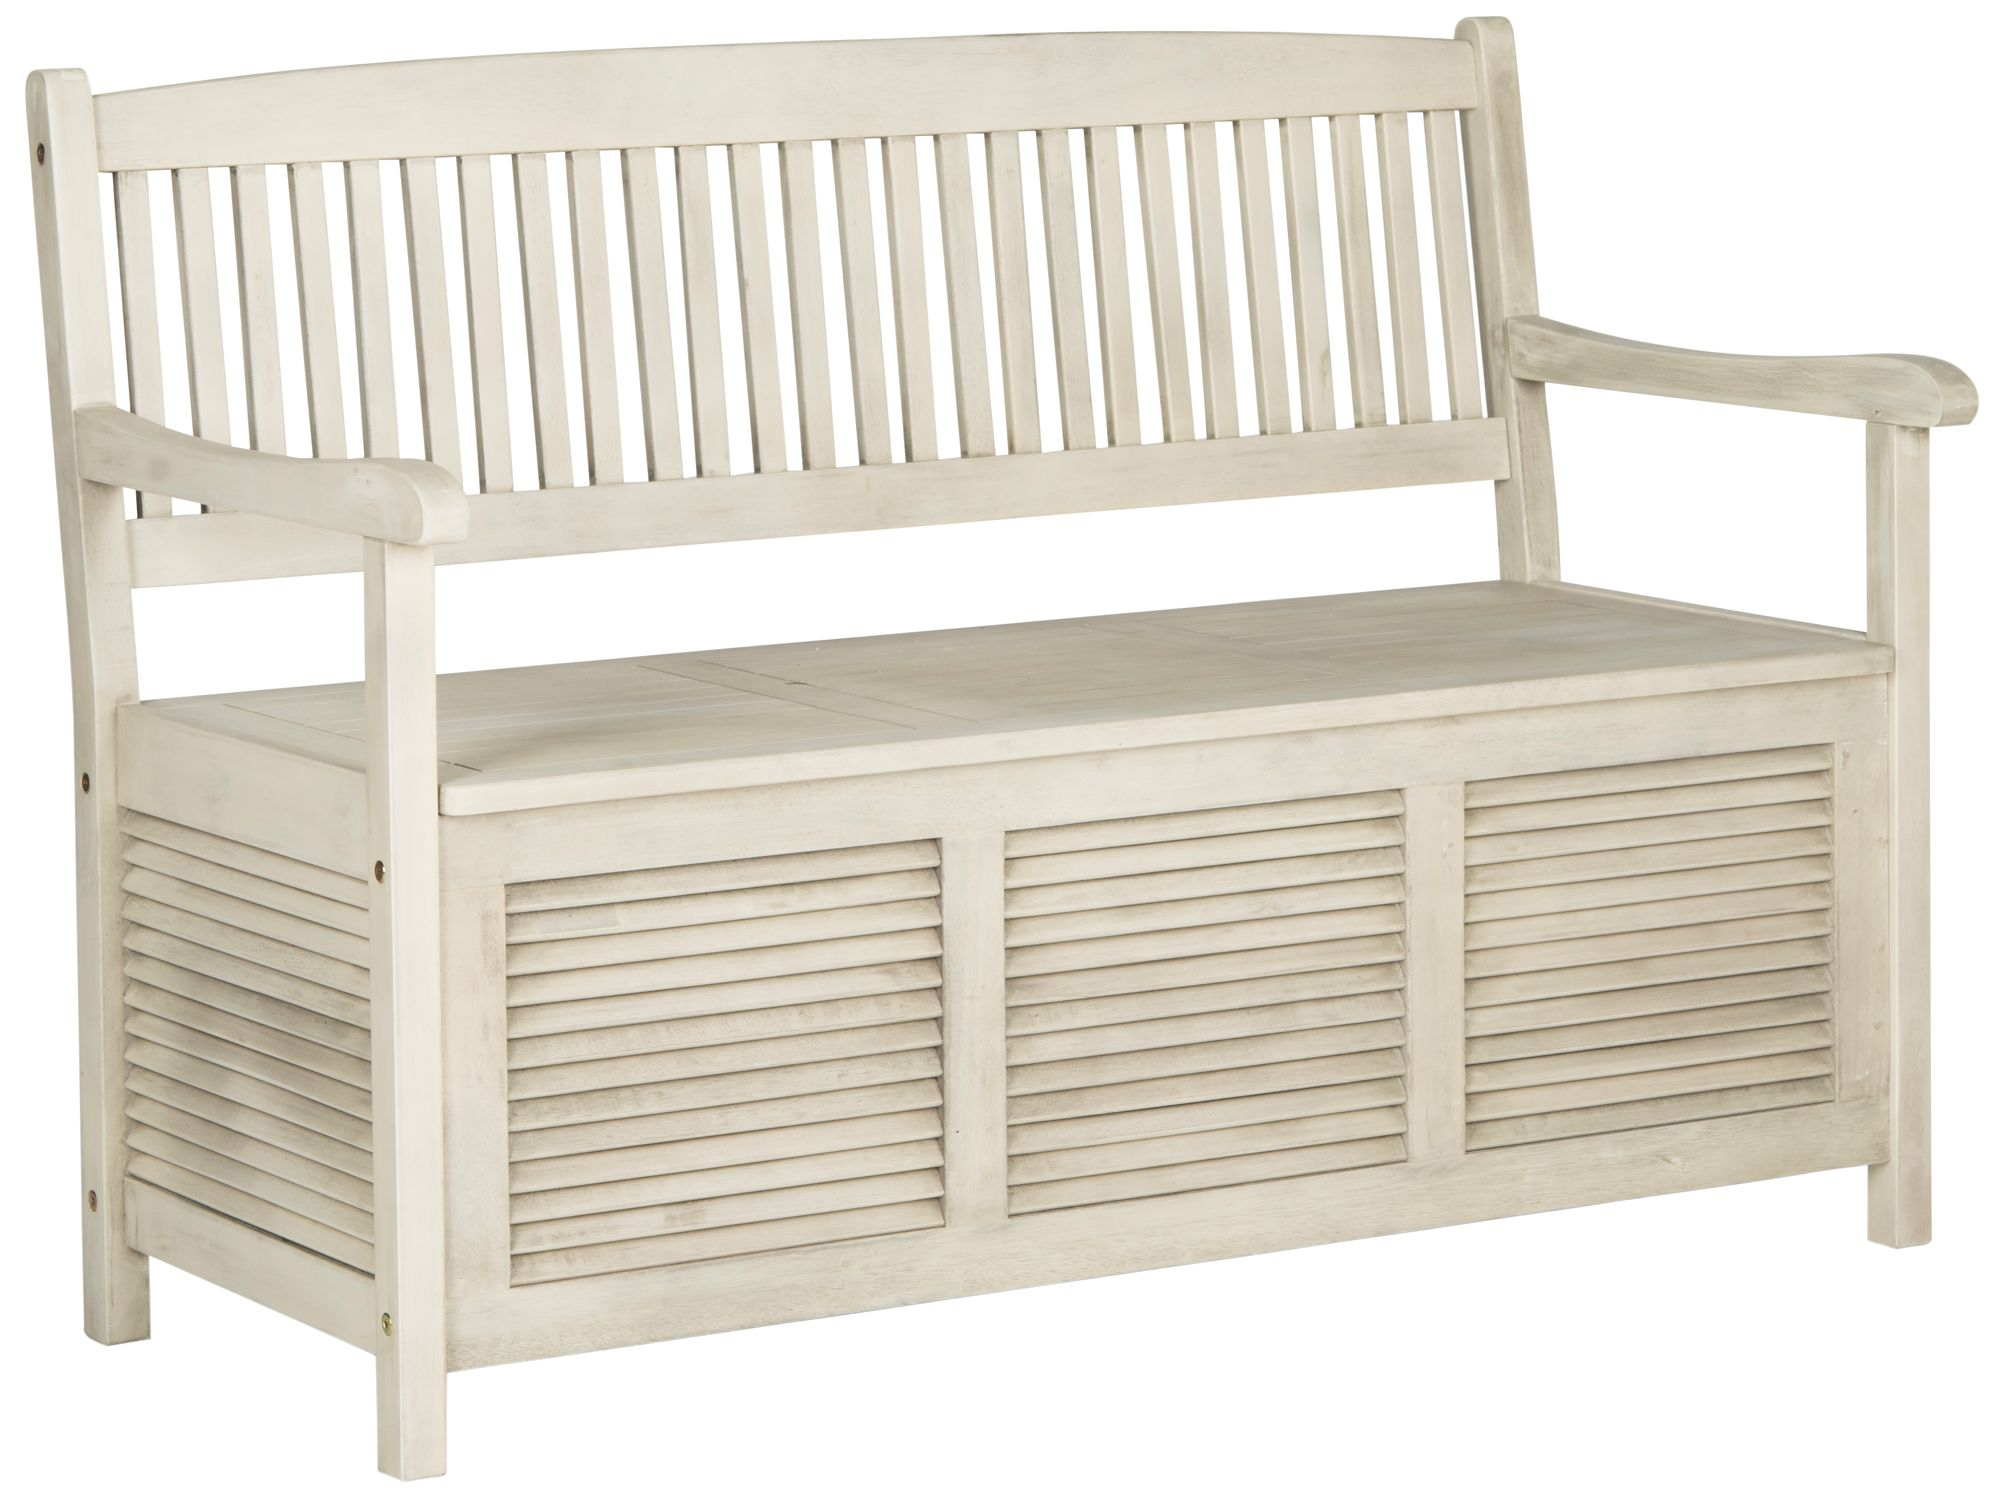 White outdoor furniture Navy Westmore Distressed White Outdoor Storage Bench Lamps Plus White Ivory Outdoor Furniture Lamps Plus